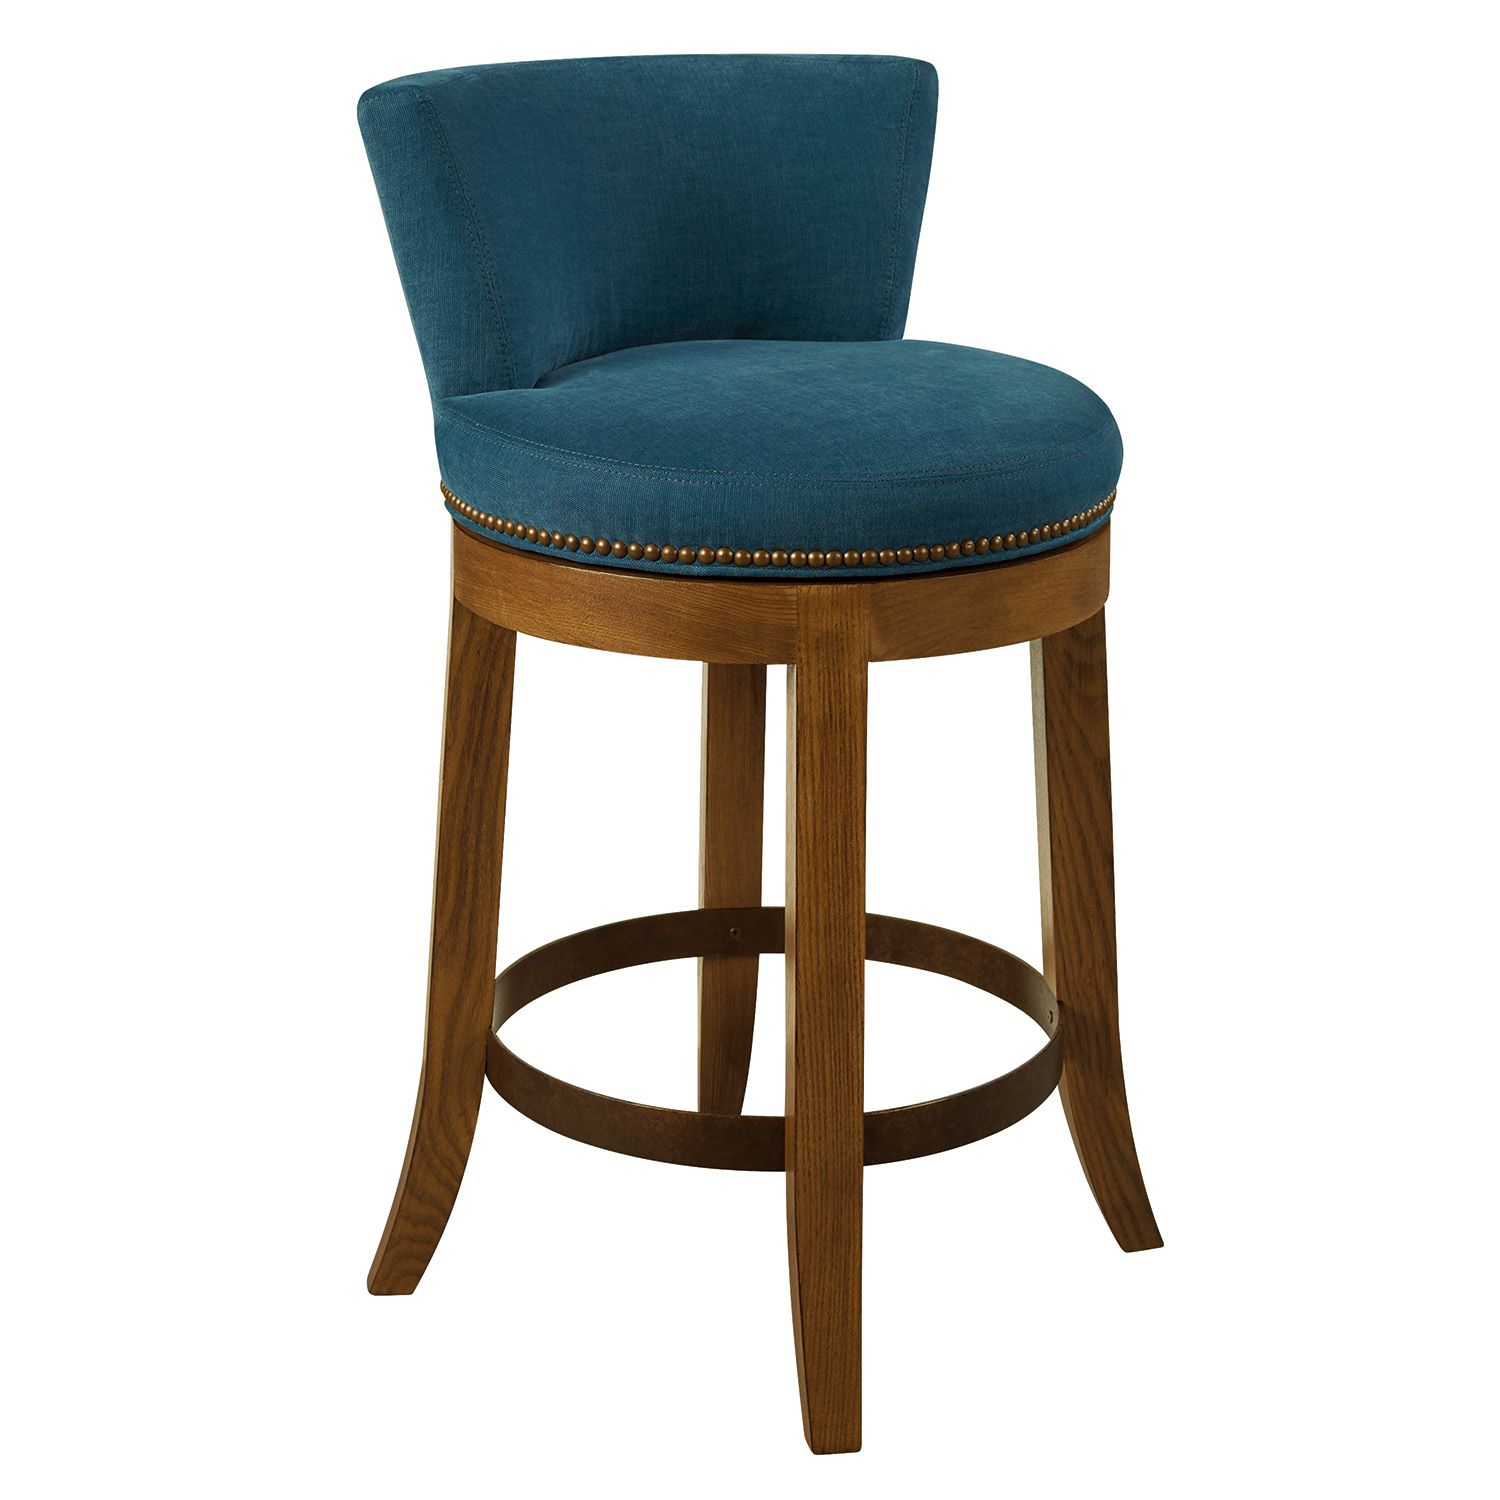 Bar Stools Everything You Need To Know About Bar Stools Upholstered Bar  Chairs With Arms And - Bar Stools Everything You Need To Know About Bar Stools